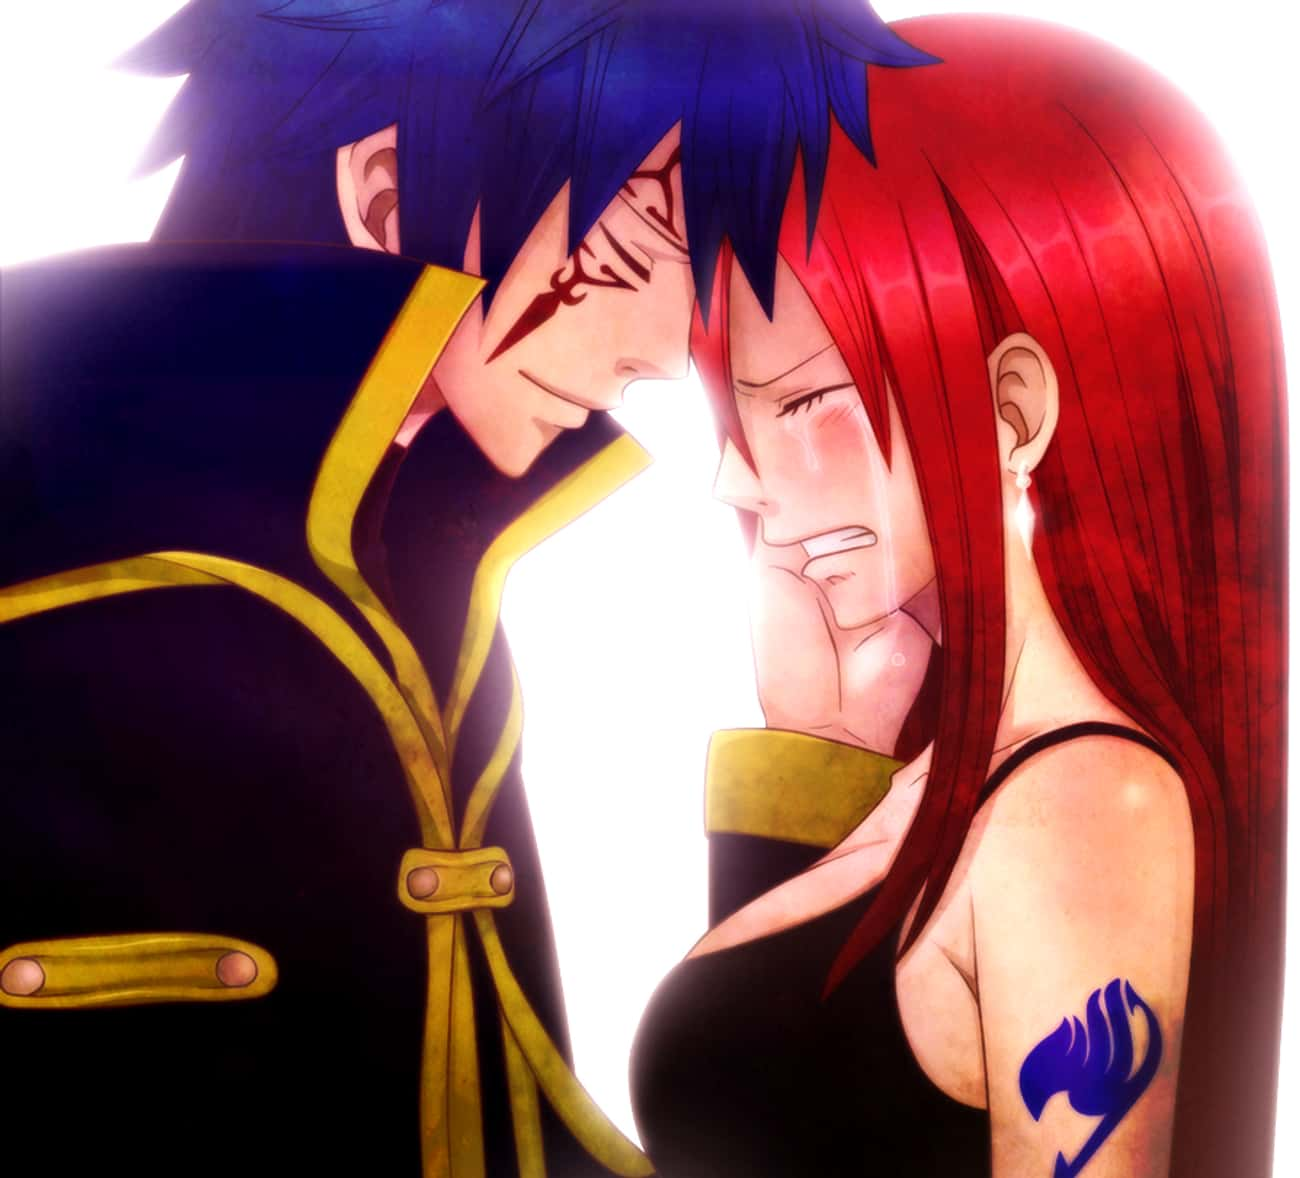 Erza And Jellal is listed (or ranked) 2 on the list The 15 Greatest Fairy Tail Ships